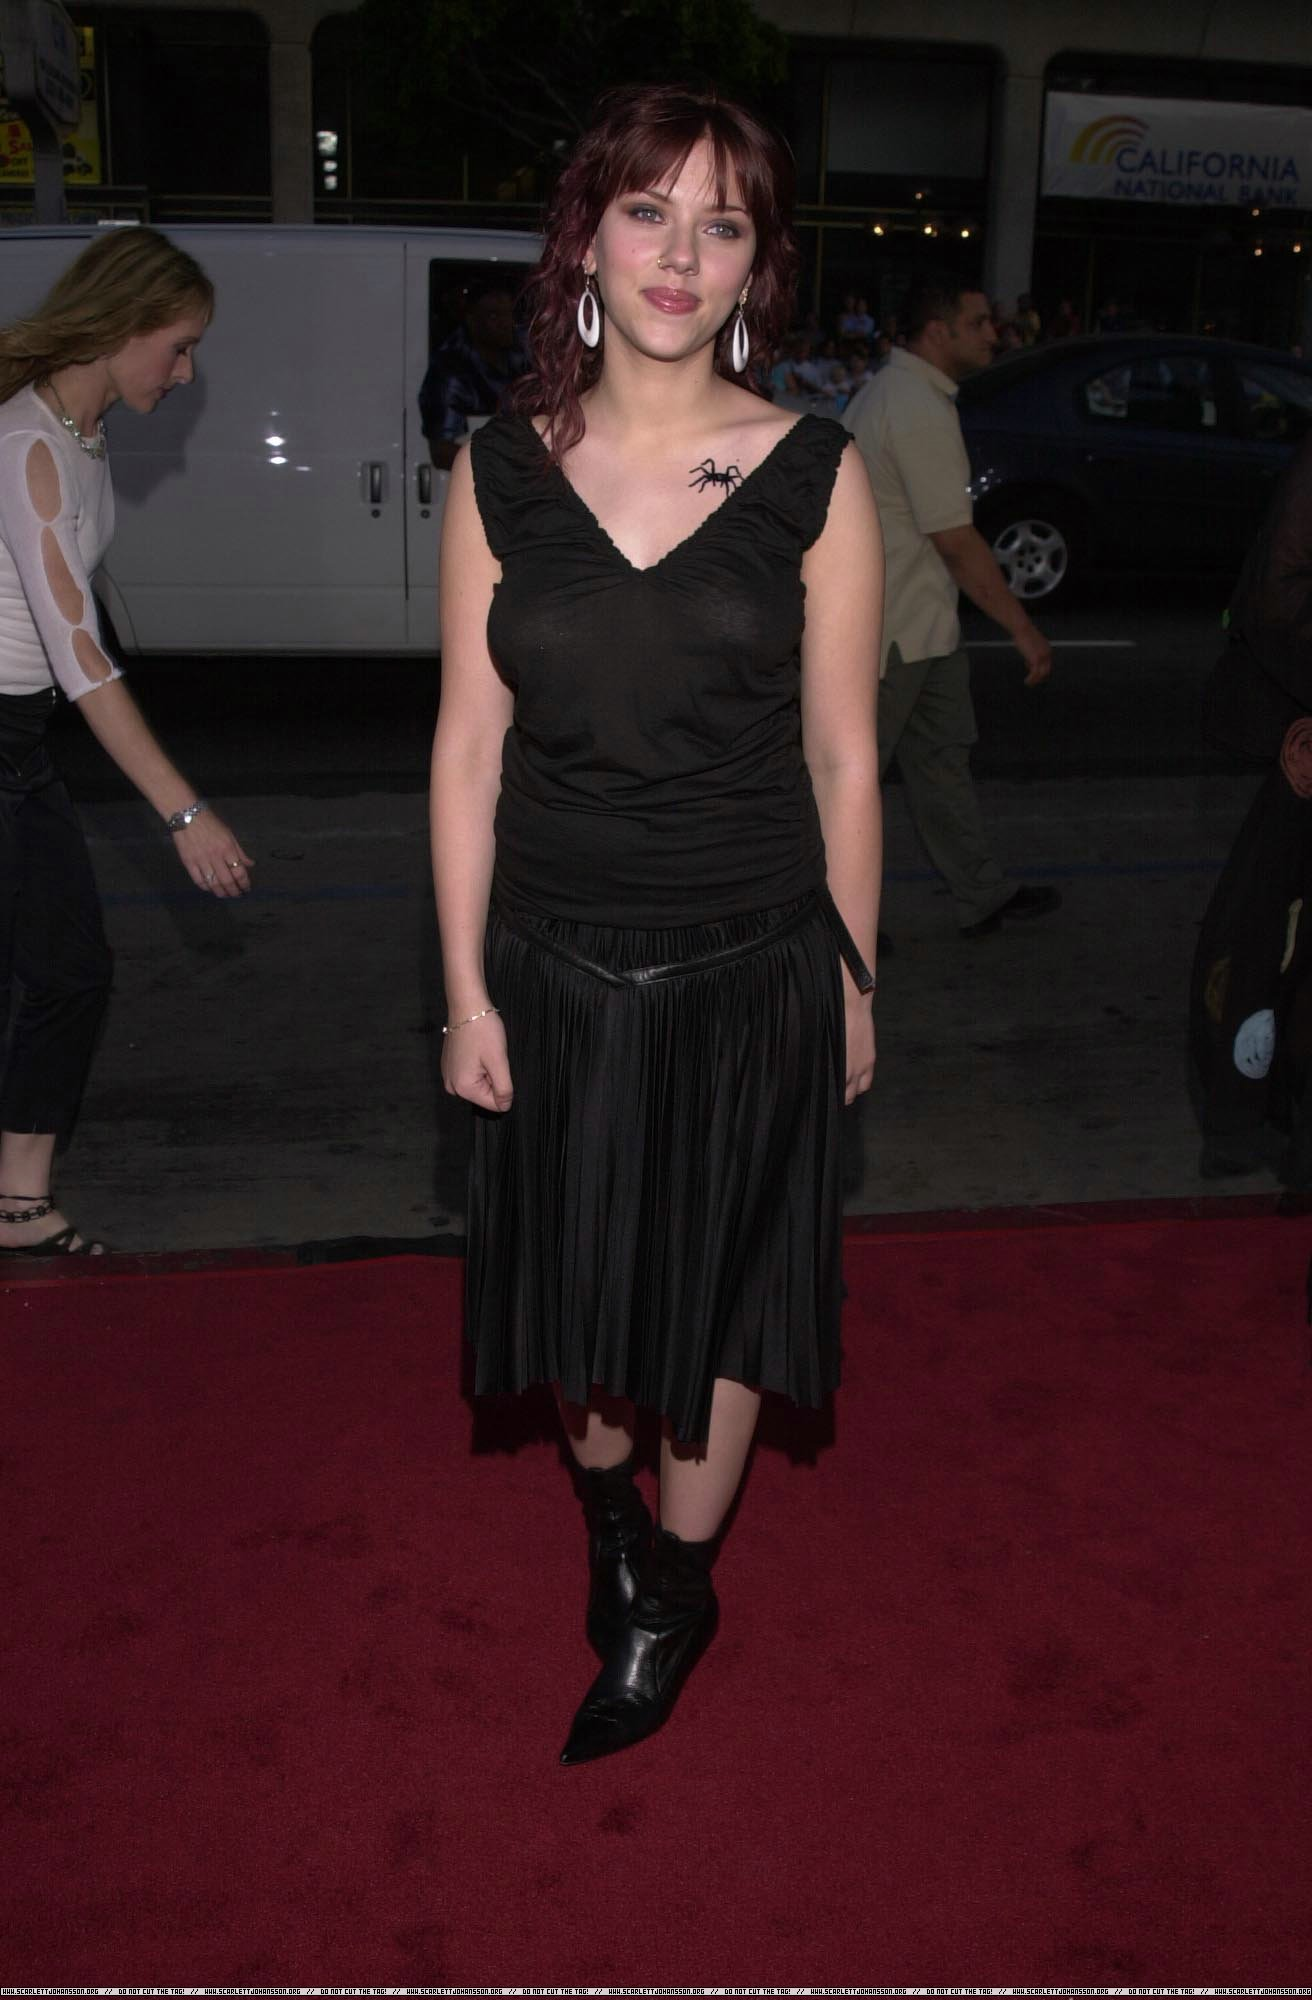 ScarlettJohansson_Black_SeeThru_Dress_1.jpg